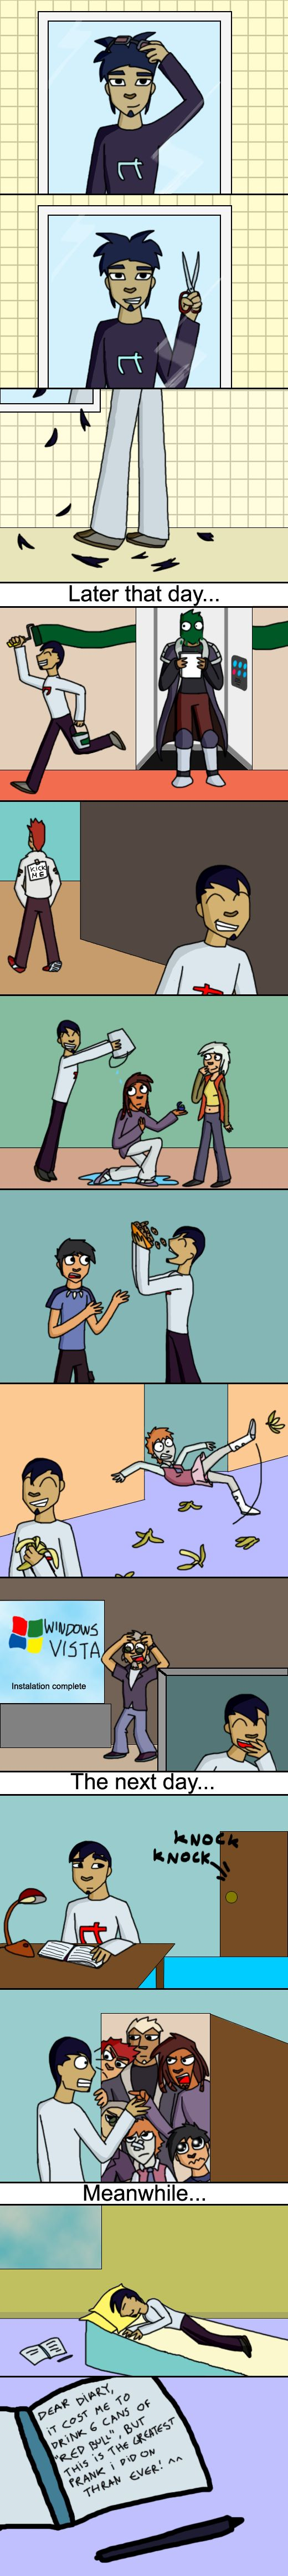 A brother's prank... by Jackasaurusrex.deviantart.com on @DeviantArt